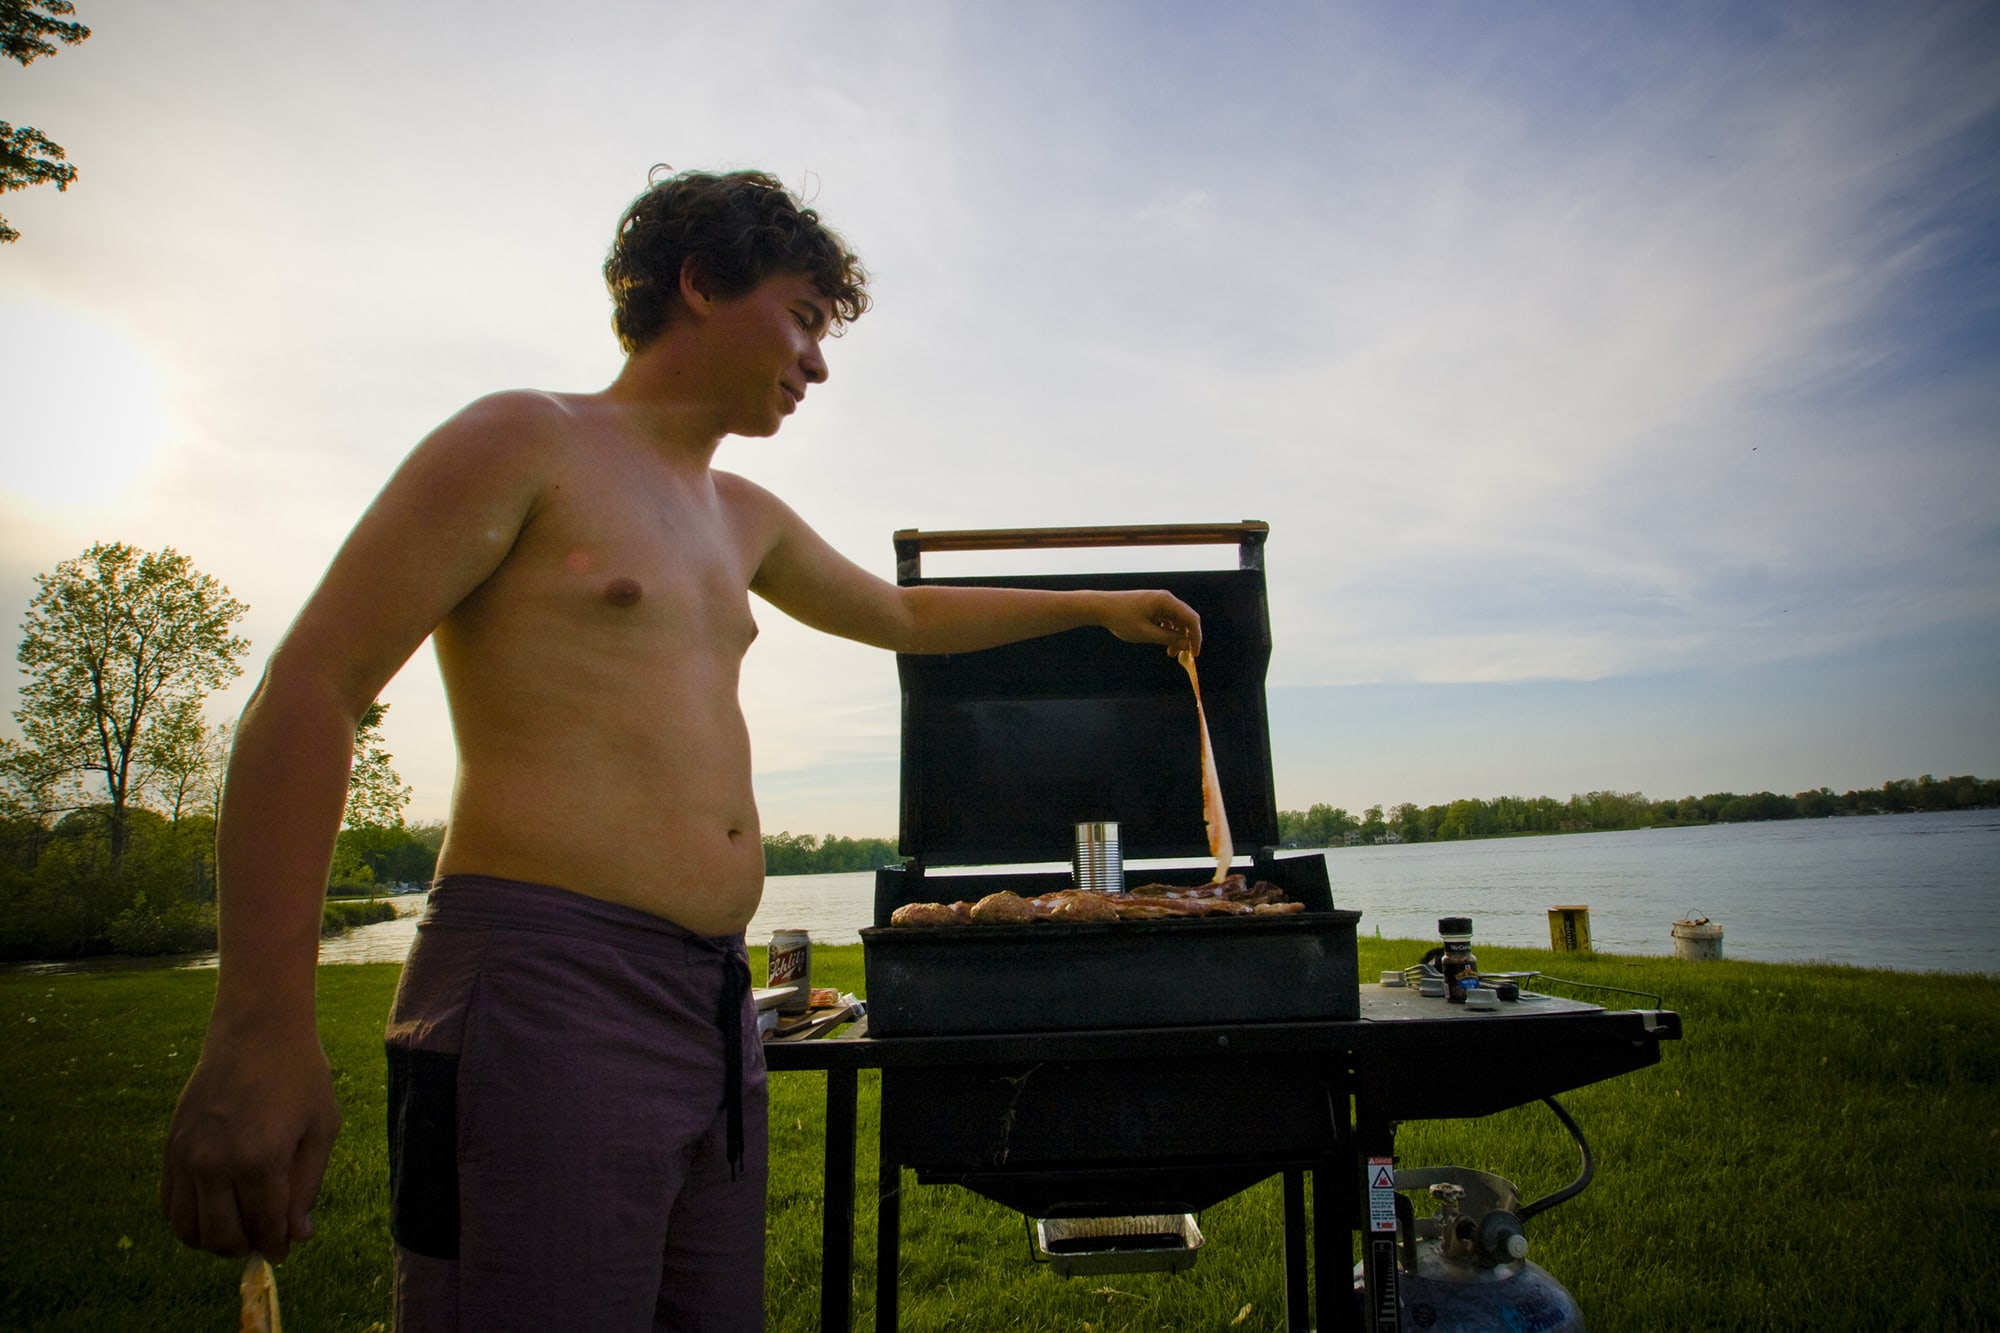 Grilling bacon on the lake - Memorial Day Weekend in Decatur, Michigan